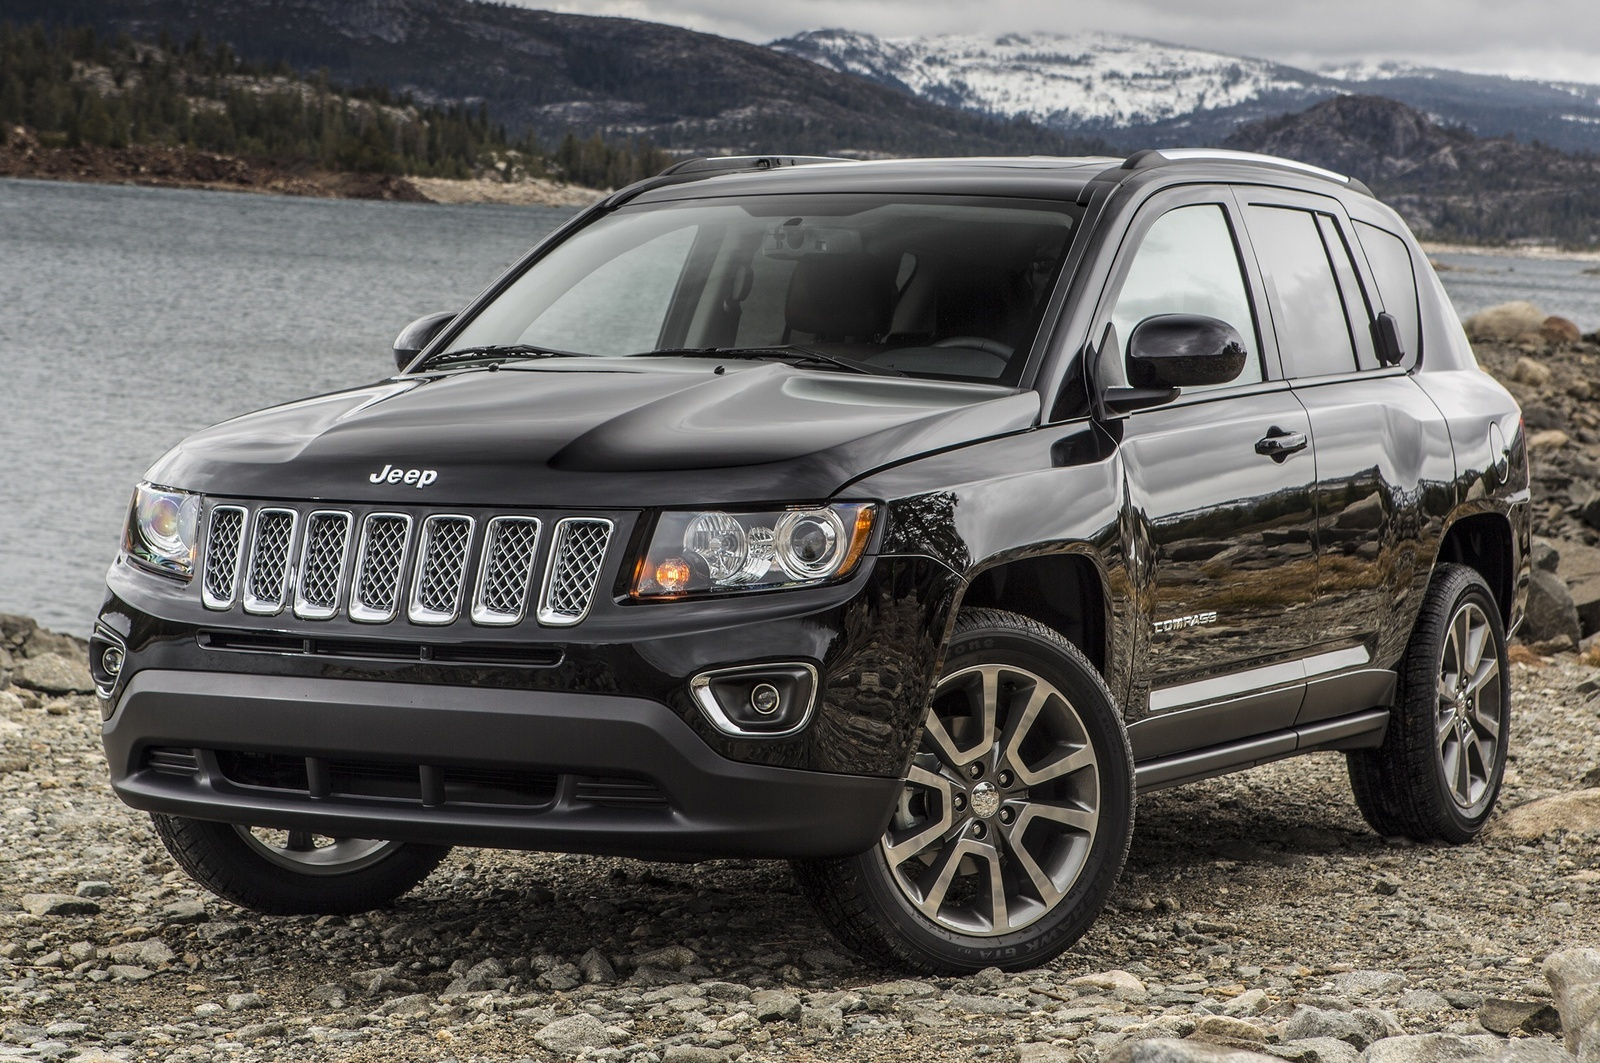 2015 jeep compass overview cargurus rh cargurus com 2012 Jeep Compass Manual 2009 Jeep Compass Repair Manual